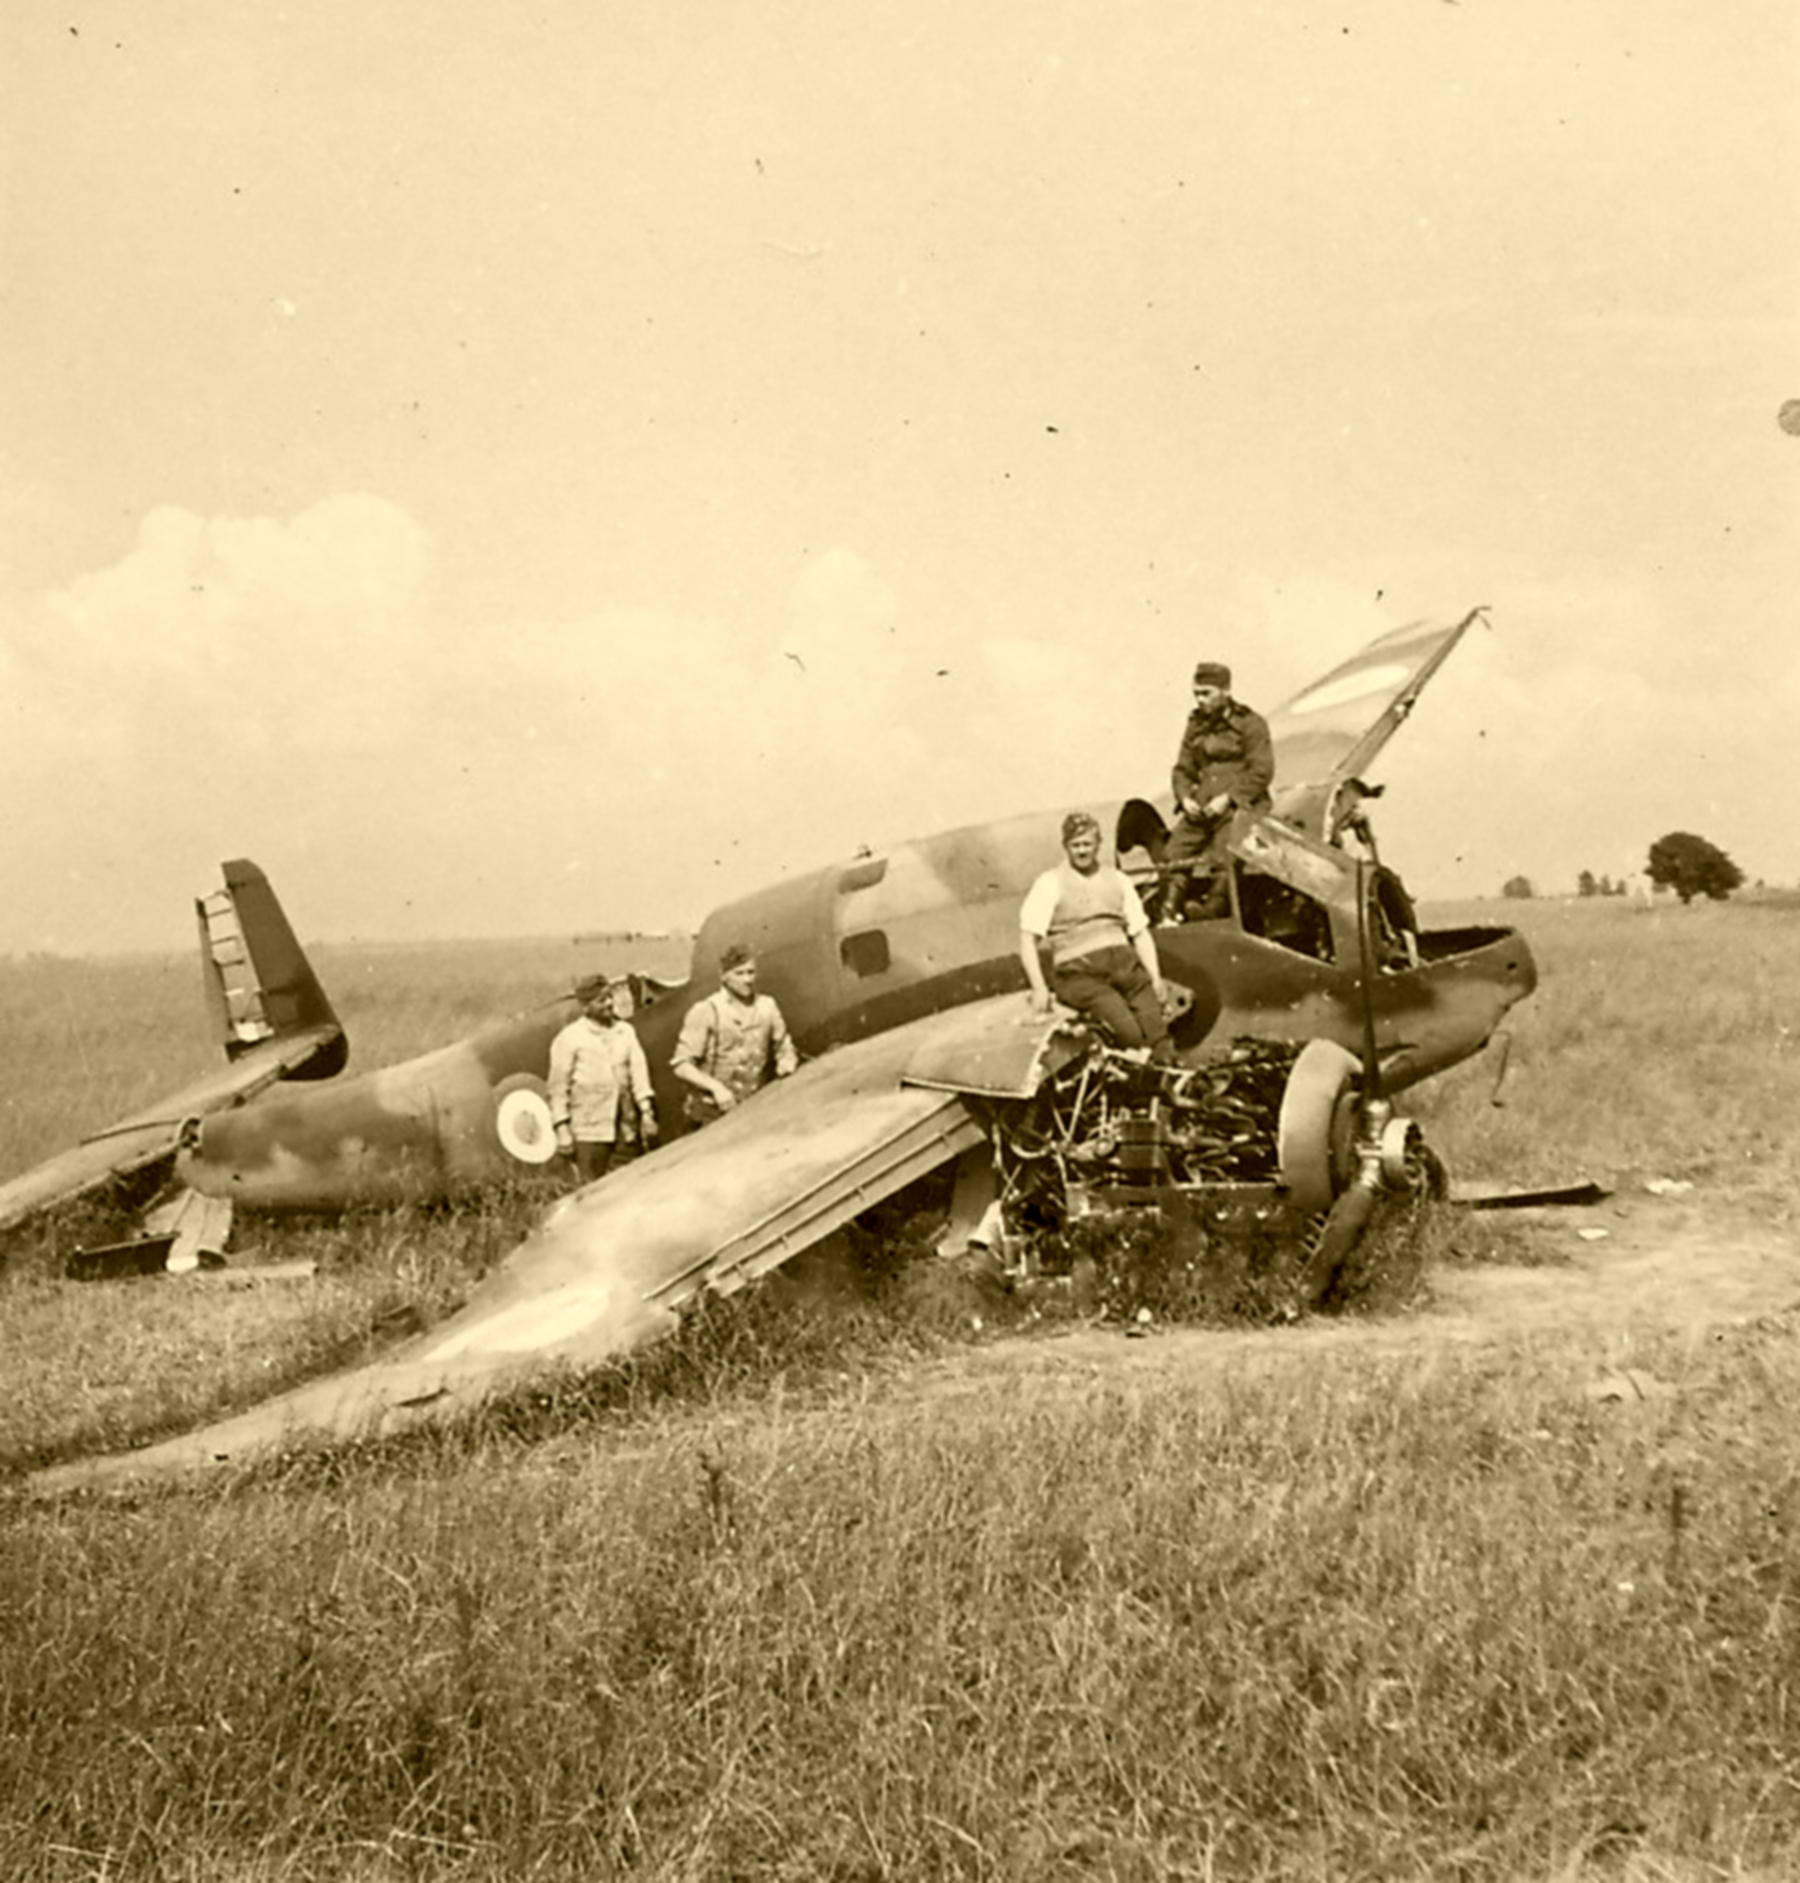 French Airforce Breguet Bre 690 destroyed on the ground battle of France May Jun 1940 ebay 02